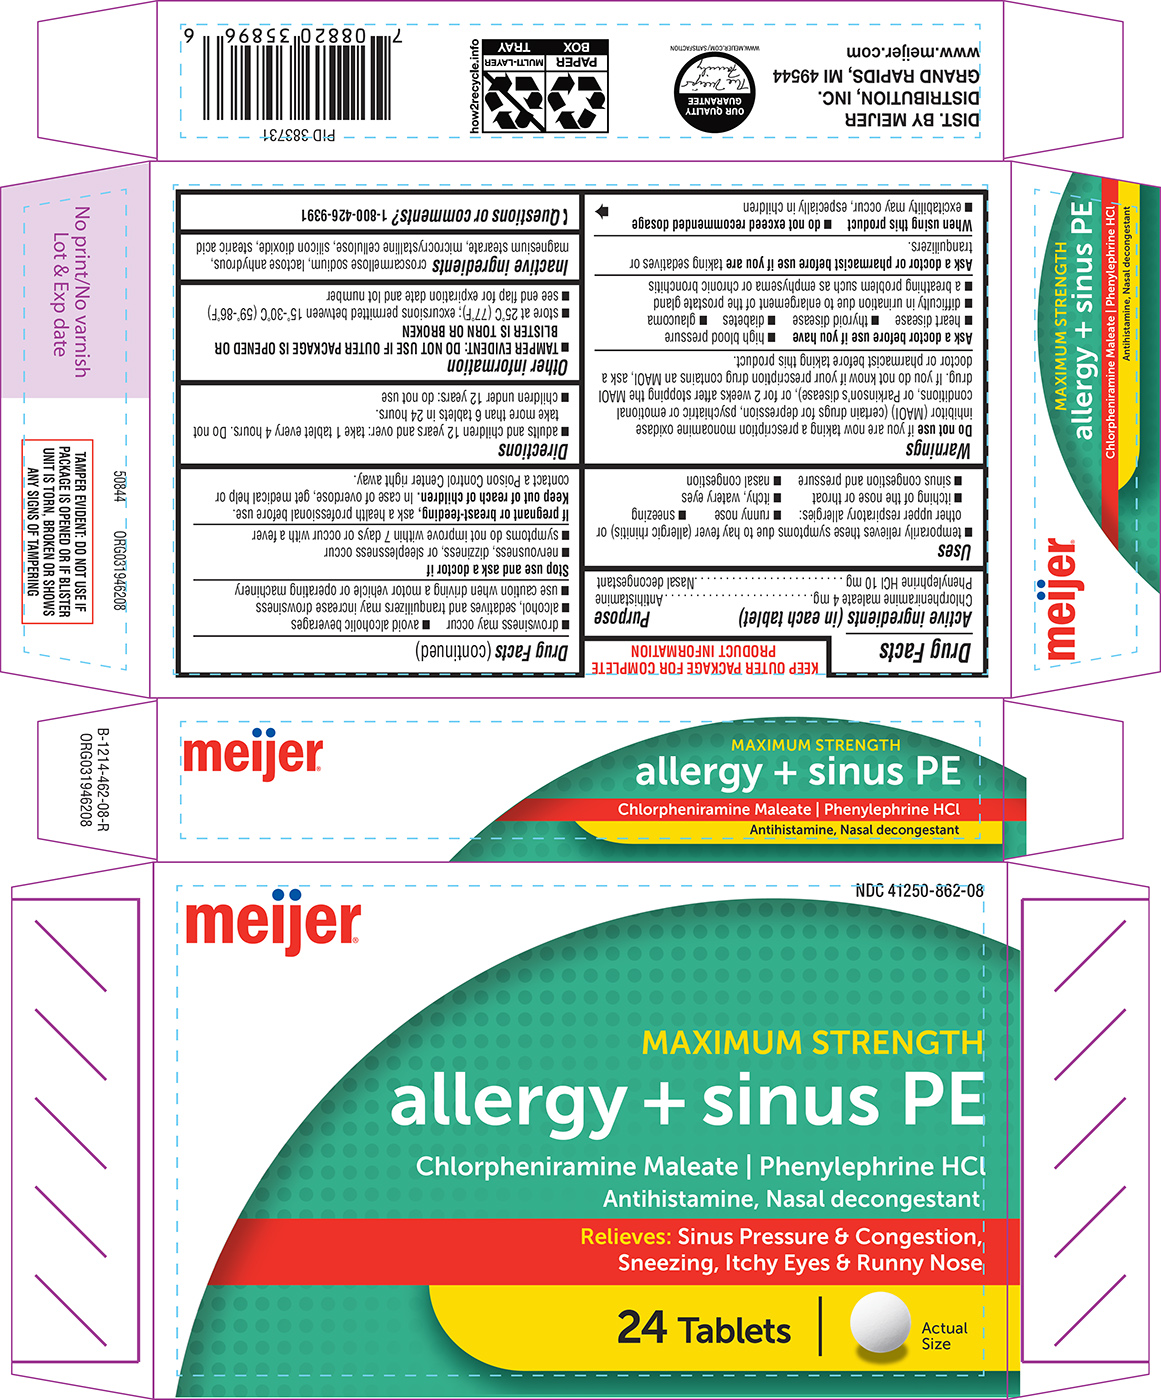 Pramipexole Dihydrochloride Tablet [Golden State Medical Supply, Inc]